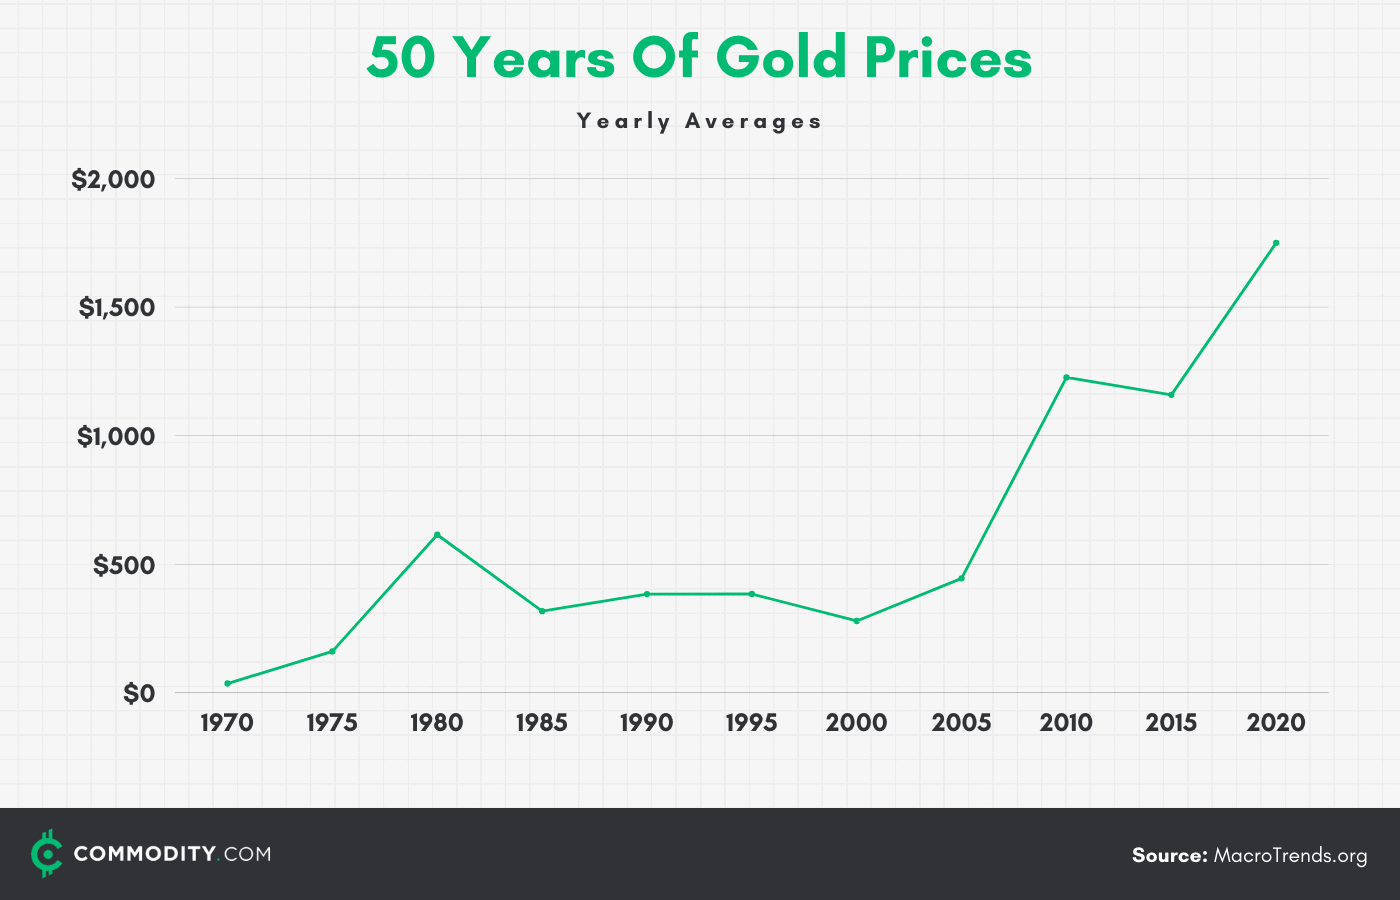 50 years of gold